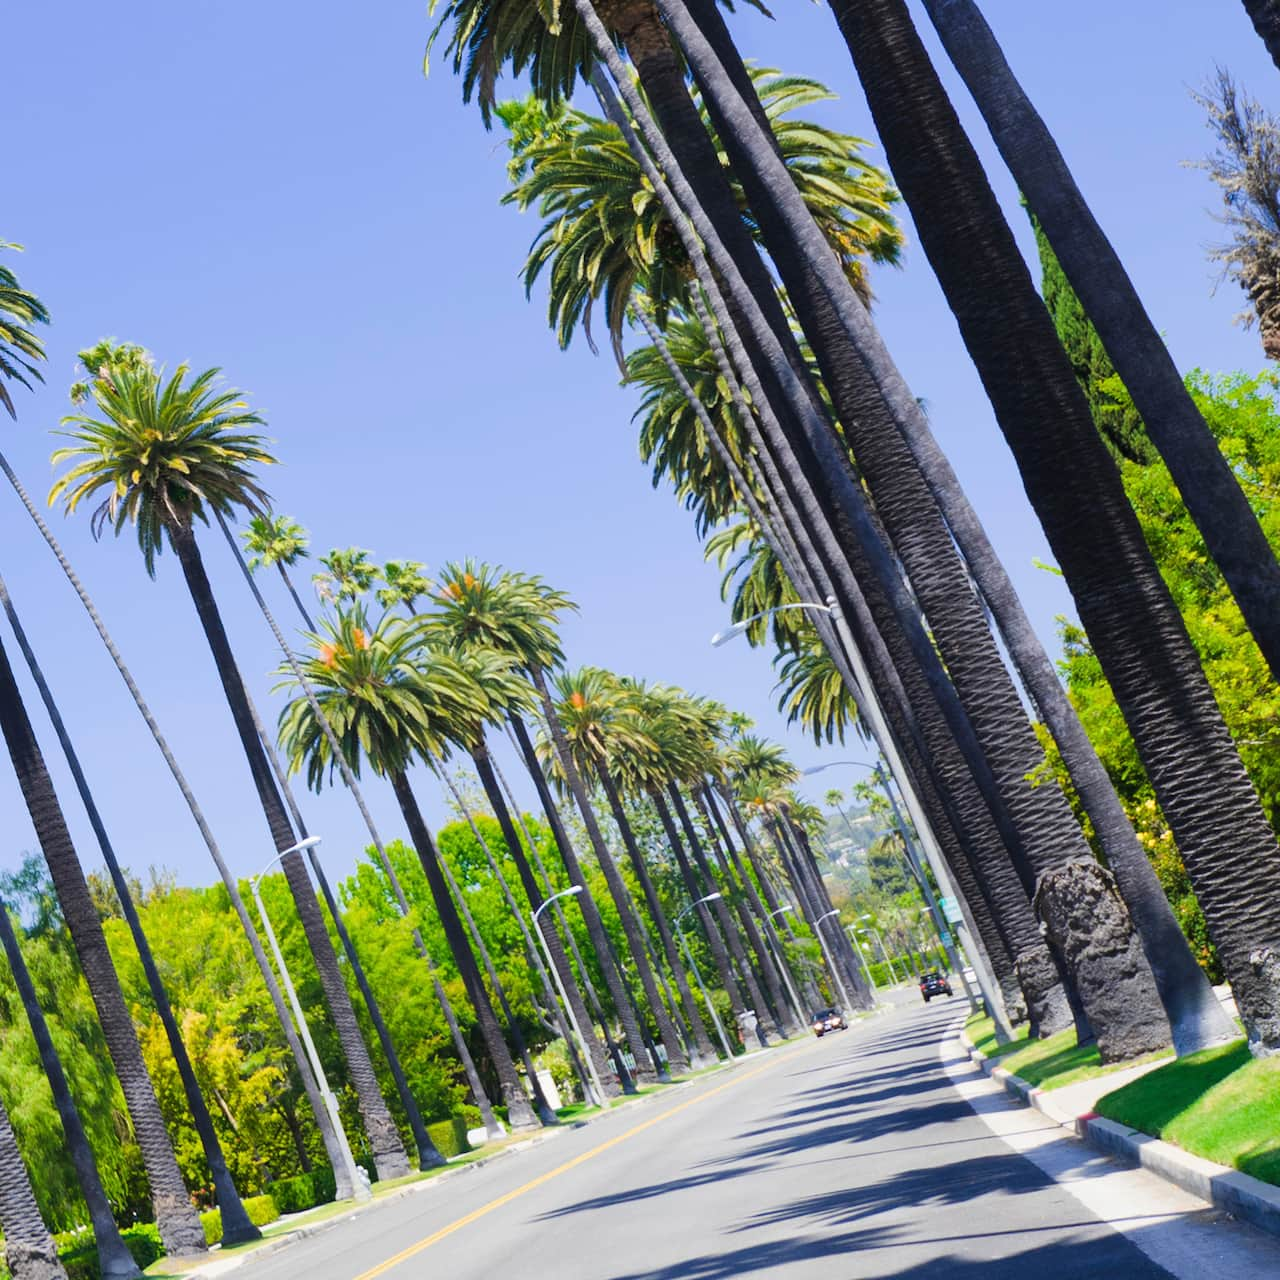 A sunny street lined with palm trees